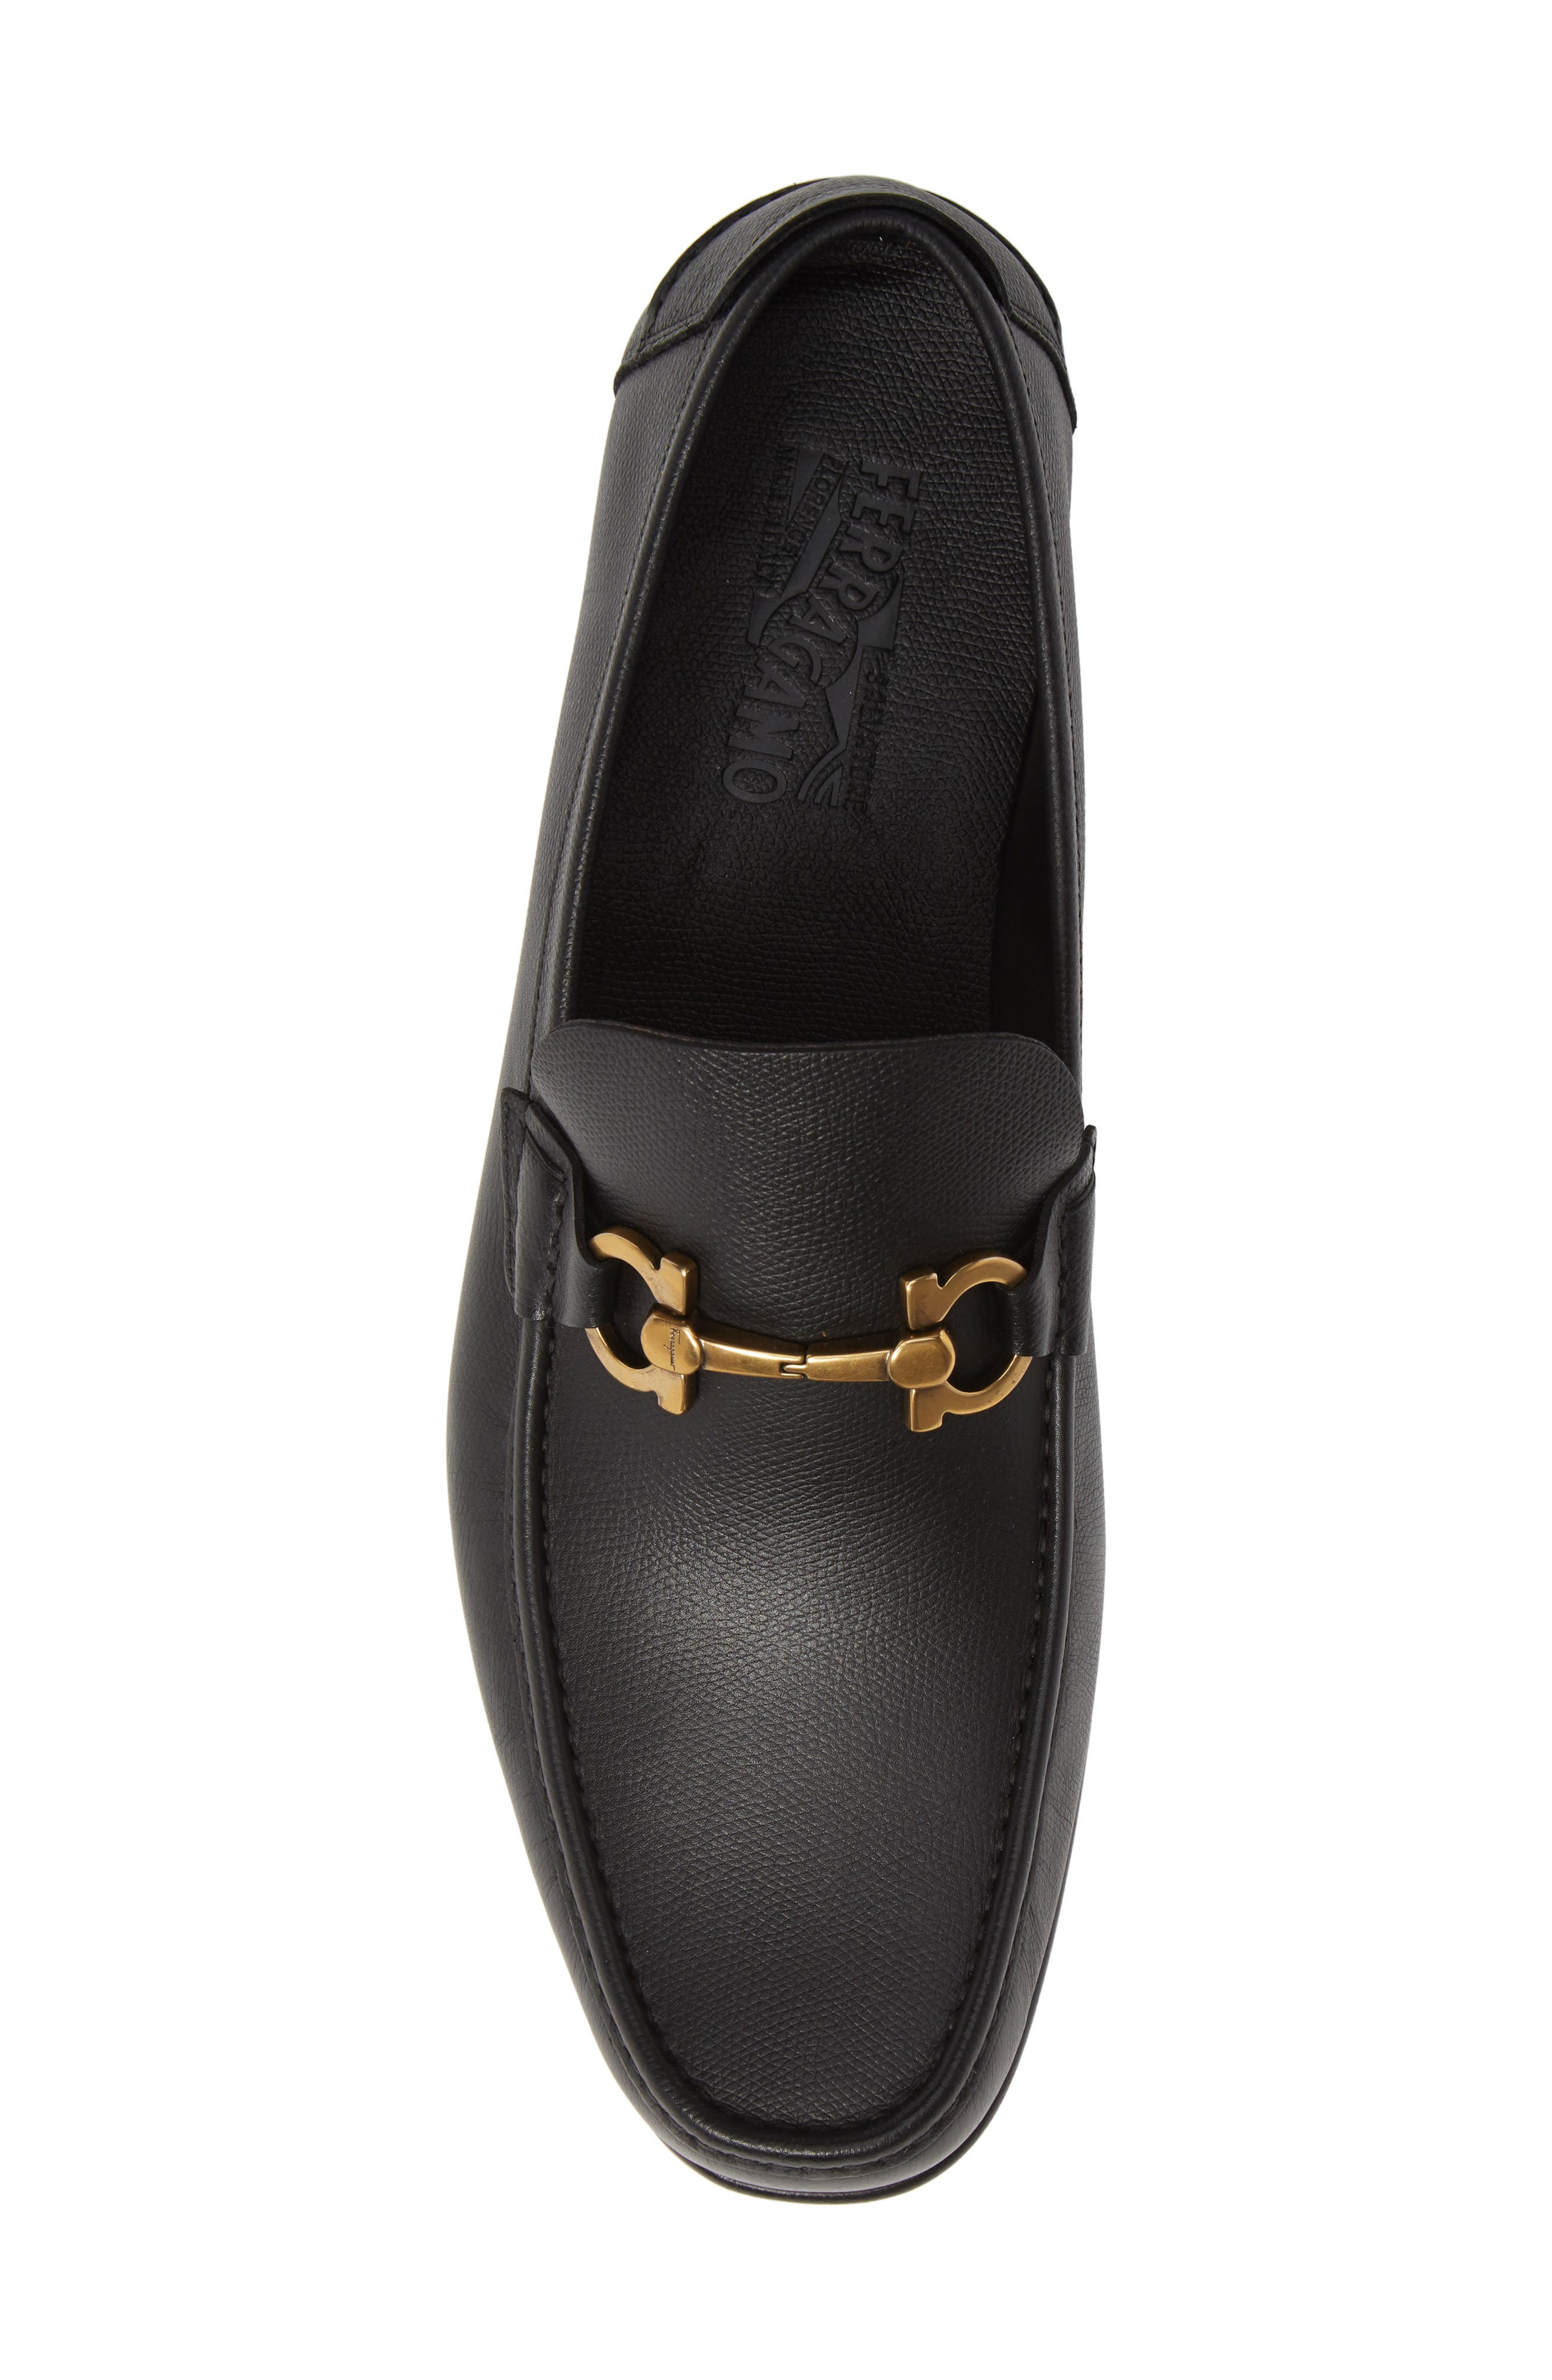 Fiordi Bit Loafer,                             Alternate thumbnail 5, color,                             NERO LEATHER